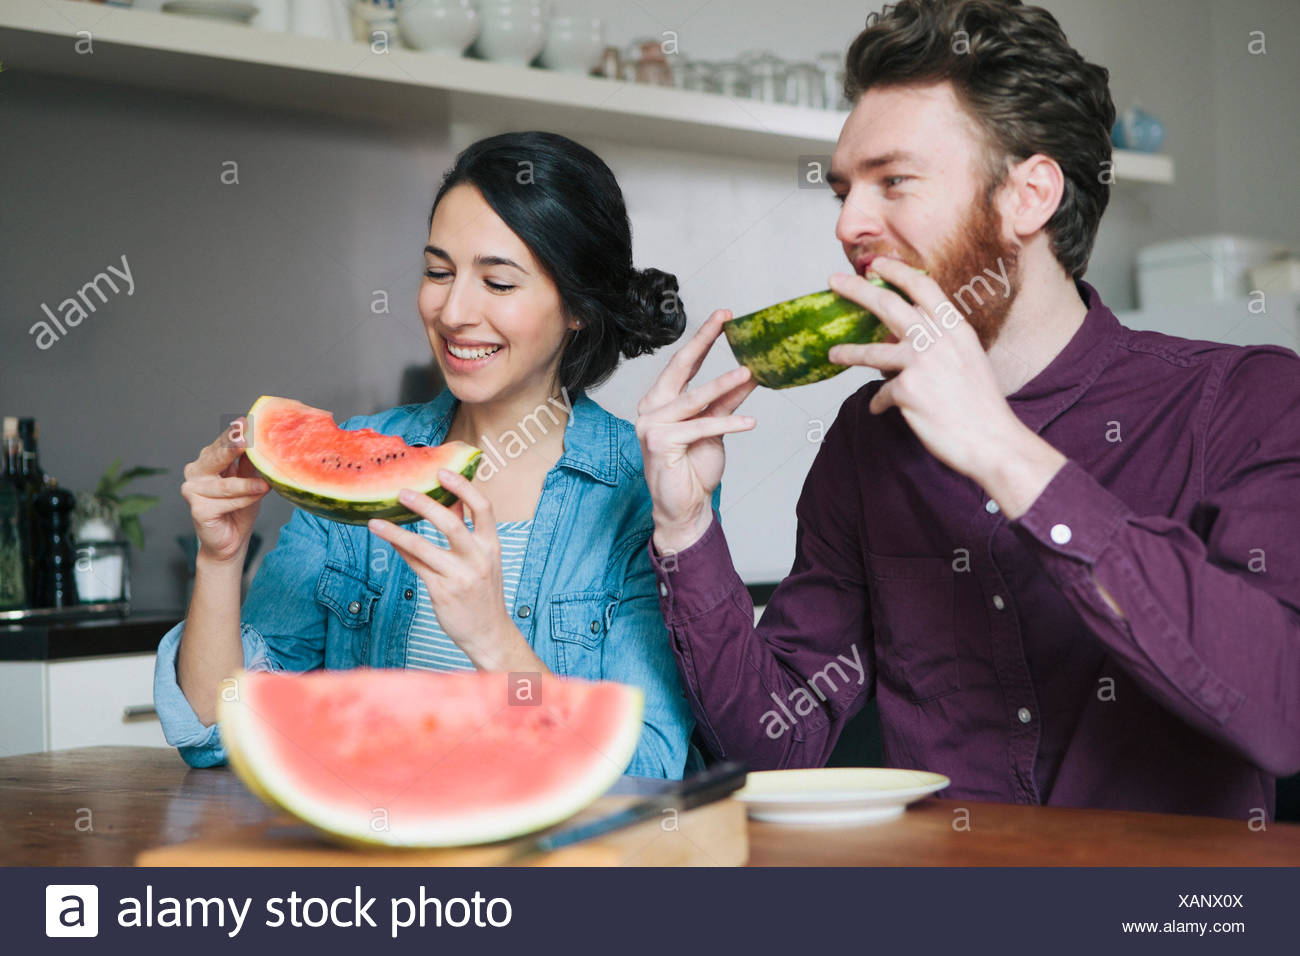 Happy Young Couple Eating Watermelon At Kitchen Table Stock